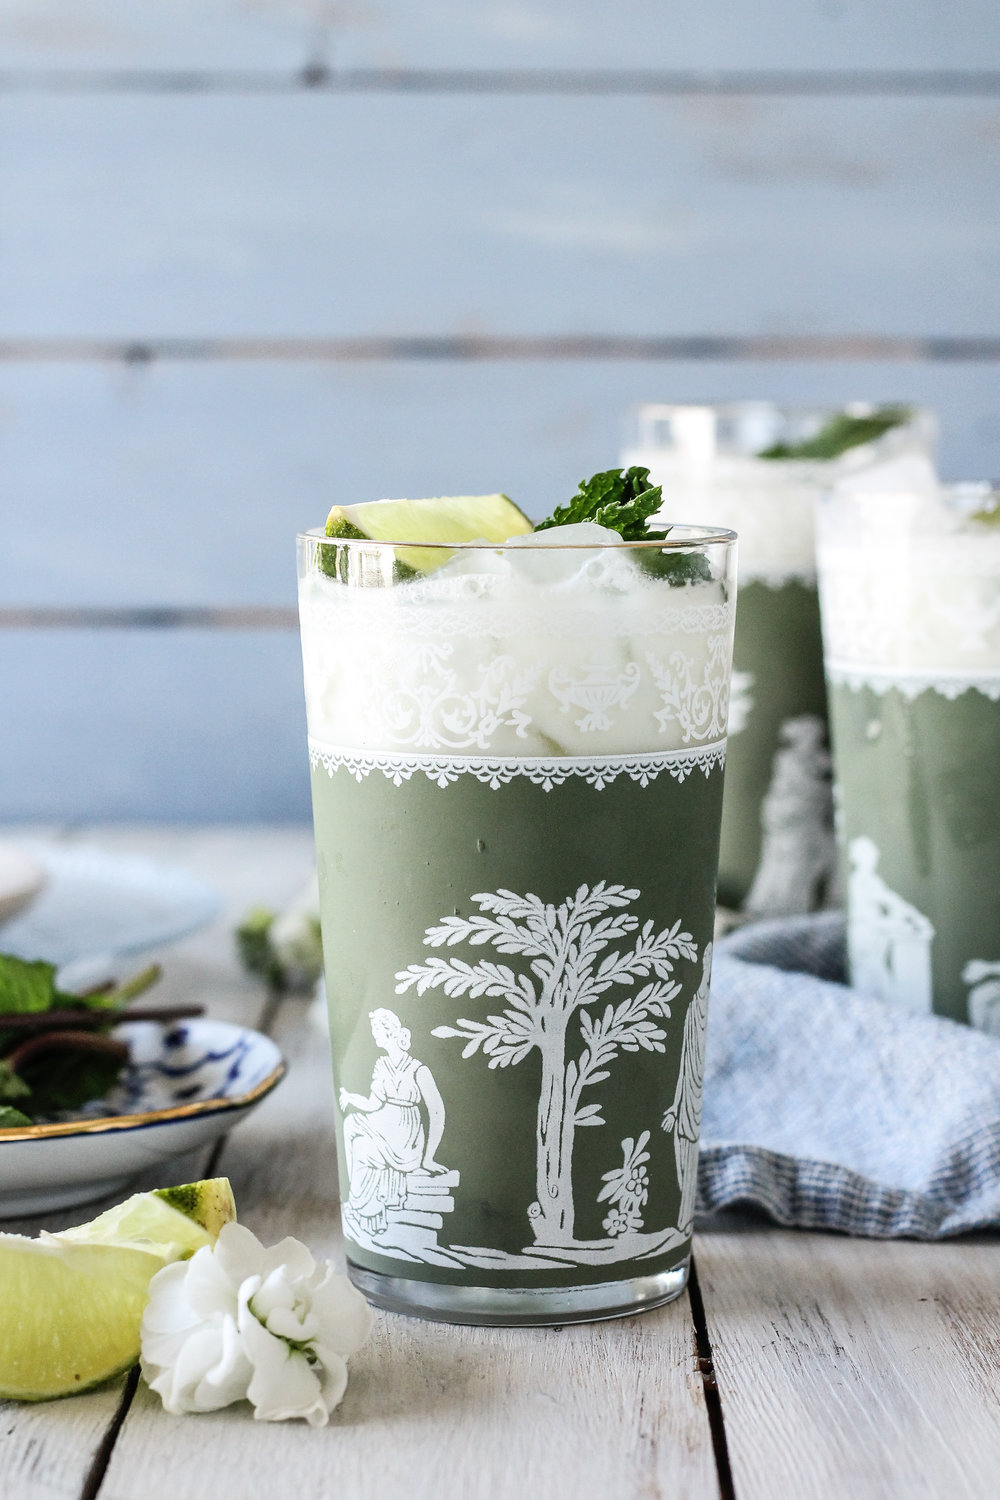 This creamy mint limeade is the perfect zesty mocktail to welcome spring.  Pair it with your favorite tacos or grilled kabobs for a quick dinner that feels extra special!  Find the super simple recipe on www.pedanticfoodie.com!